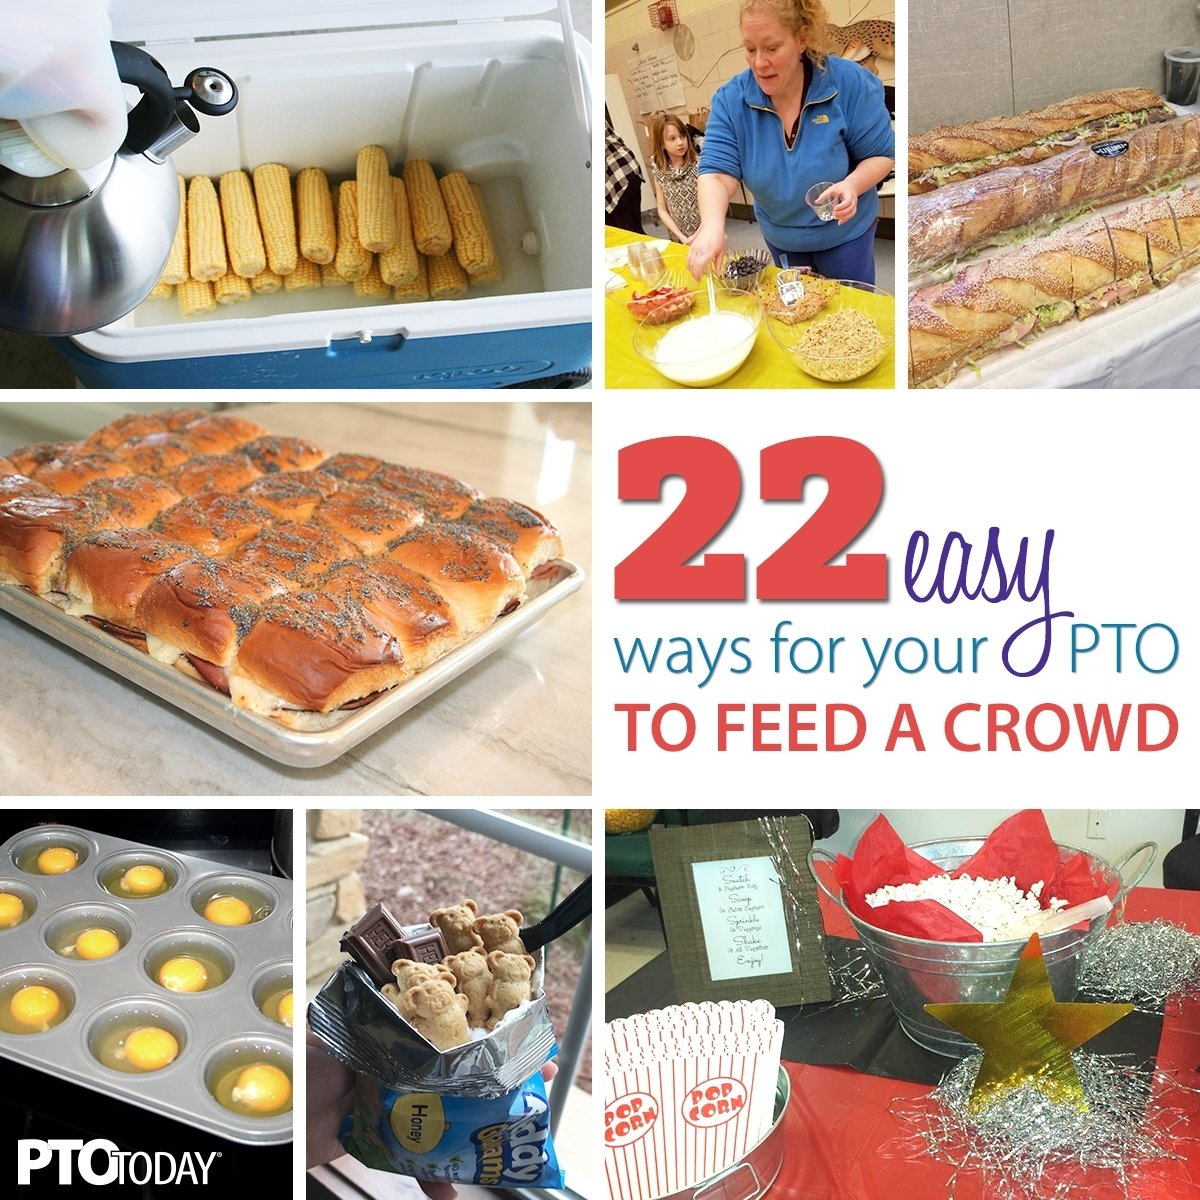 10 Most Popular Food Ideas For Large Parties 22 easy meal ideas for large groups pto today 4 2021